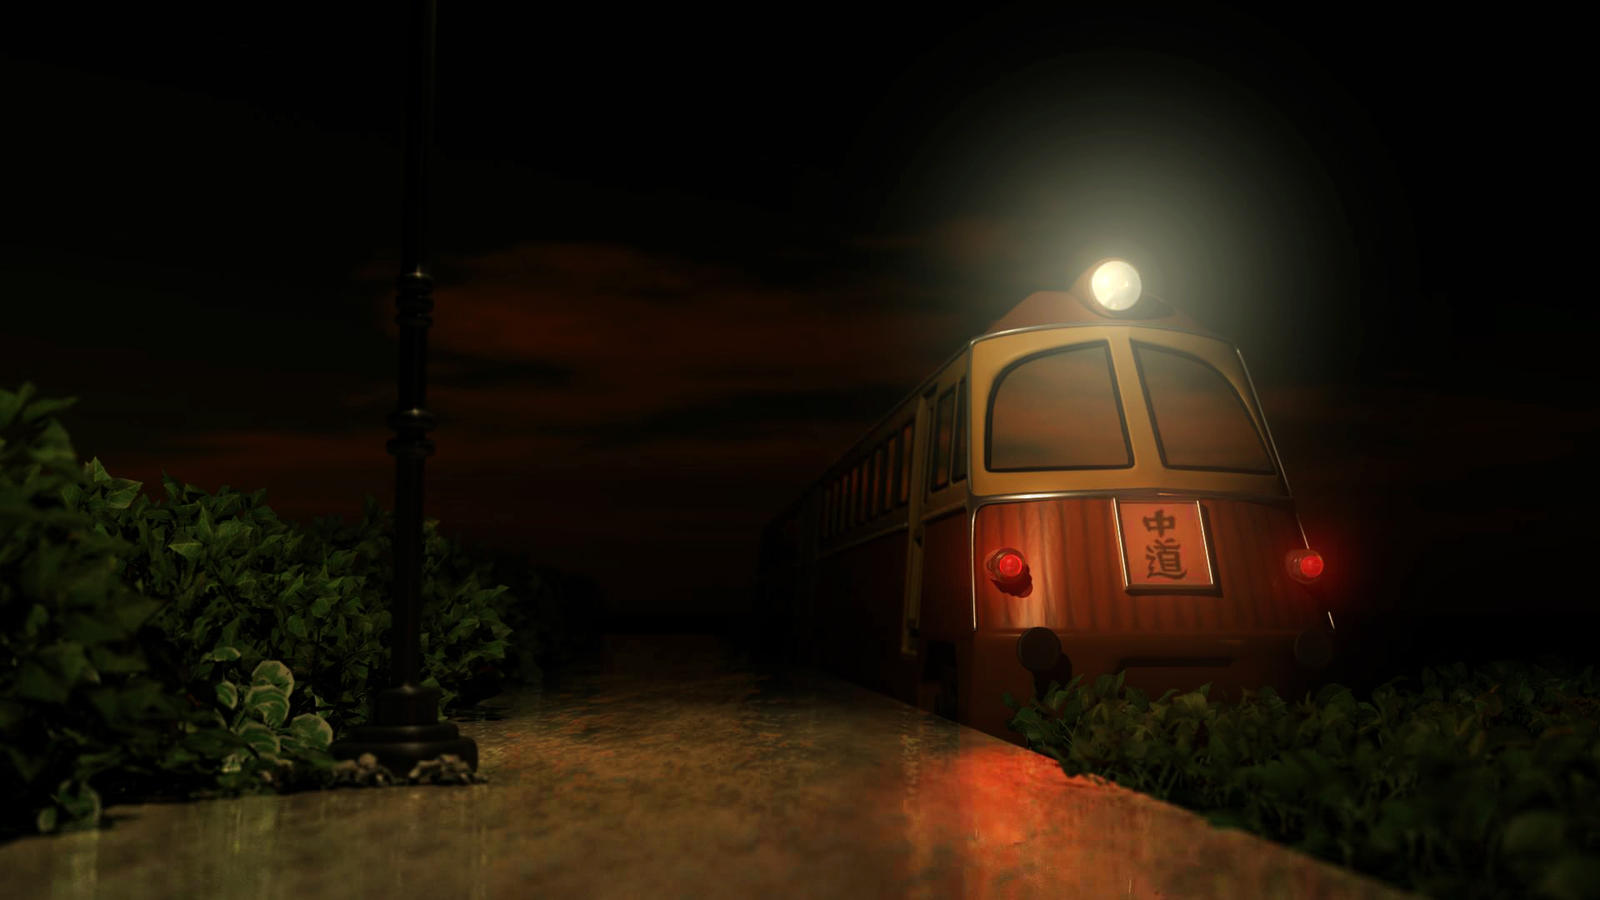 The Train by MCS1992